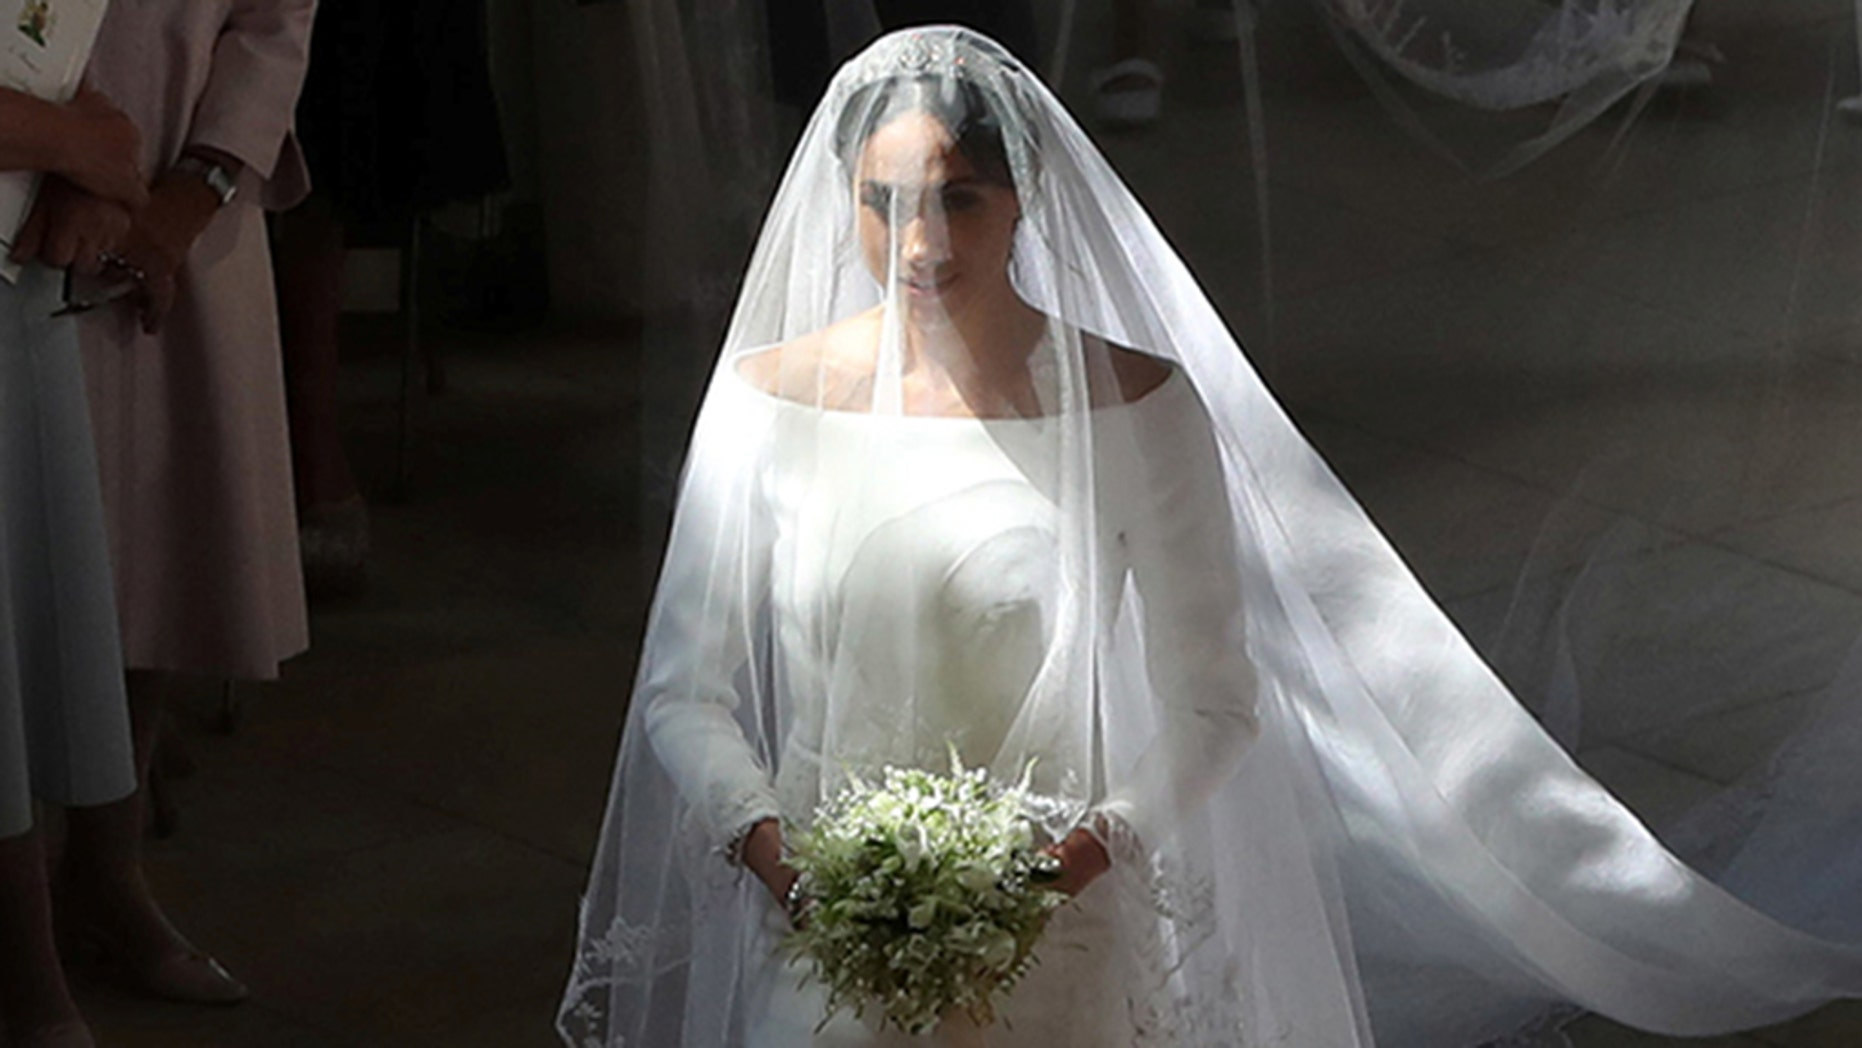 Meghan Markle married Prince Harry on May 19, 2018 at St. George's Chapel at Windsor Castle in Windsor, England.